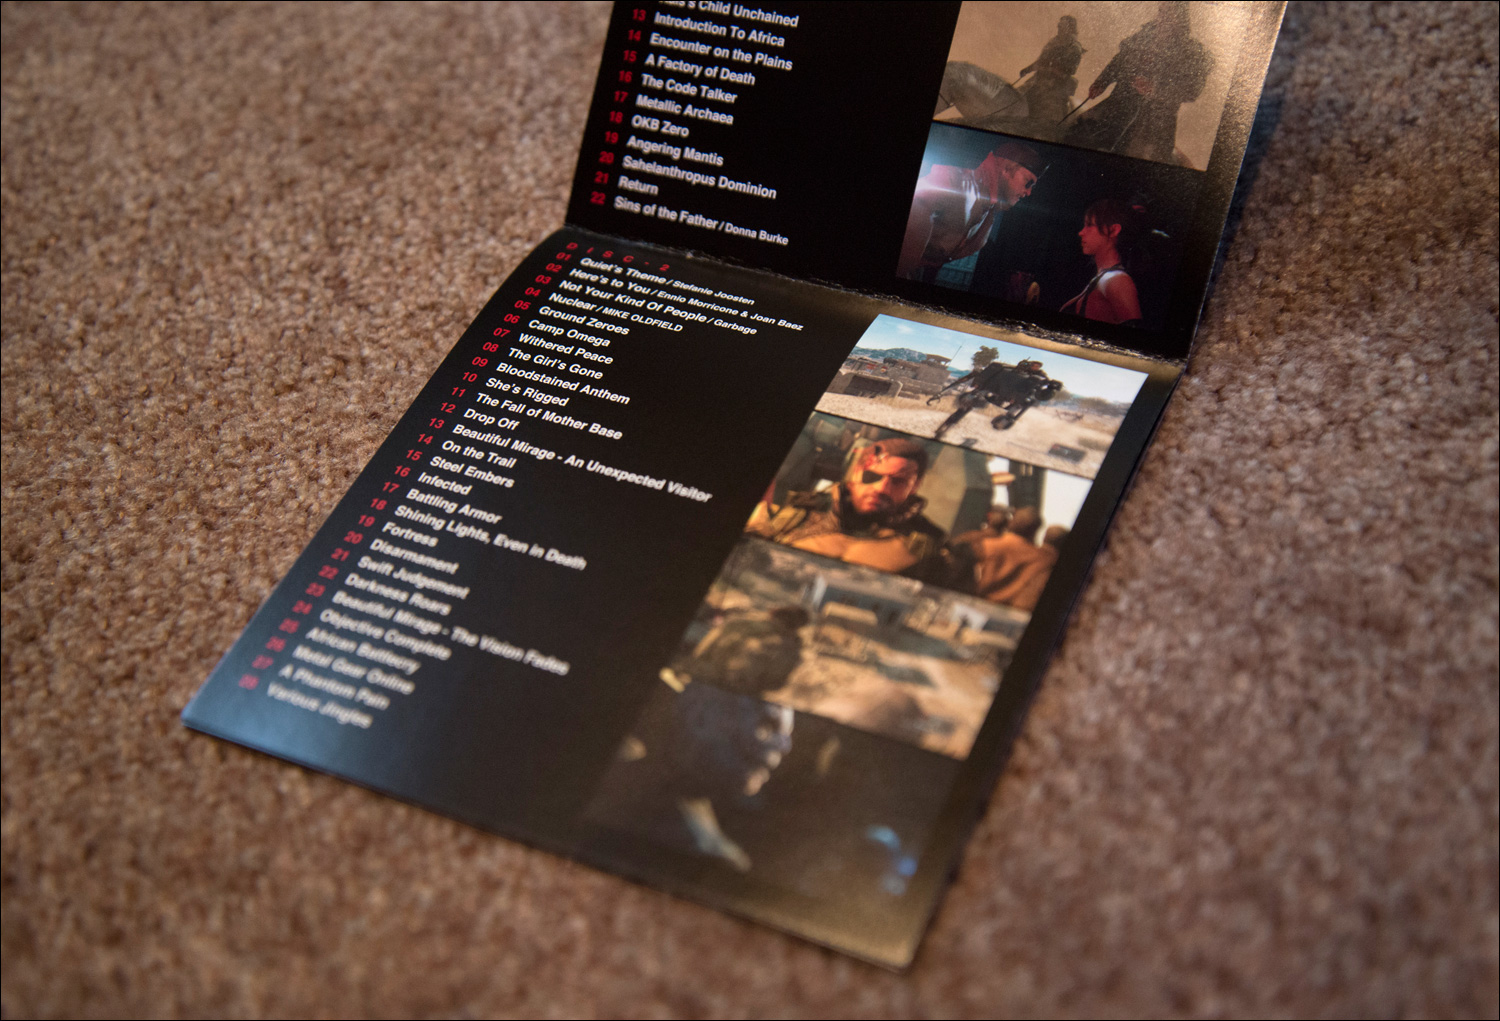 Metal-Gear-Solid-V-Original-Soundtrack-Tracklist-Disc-2